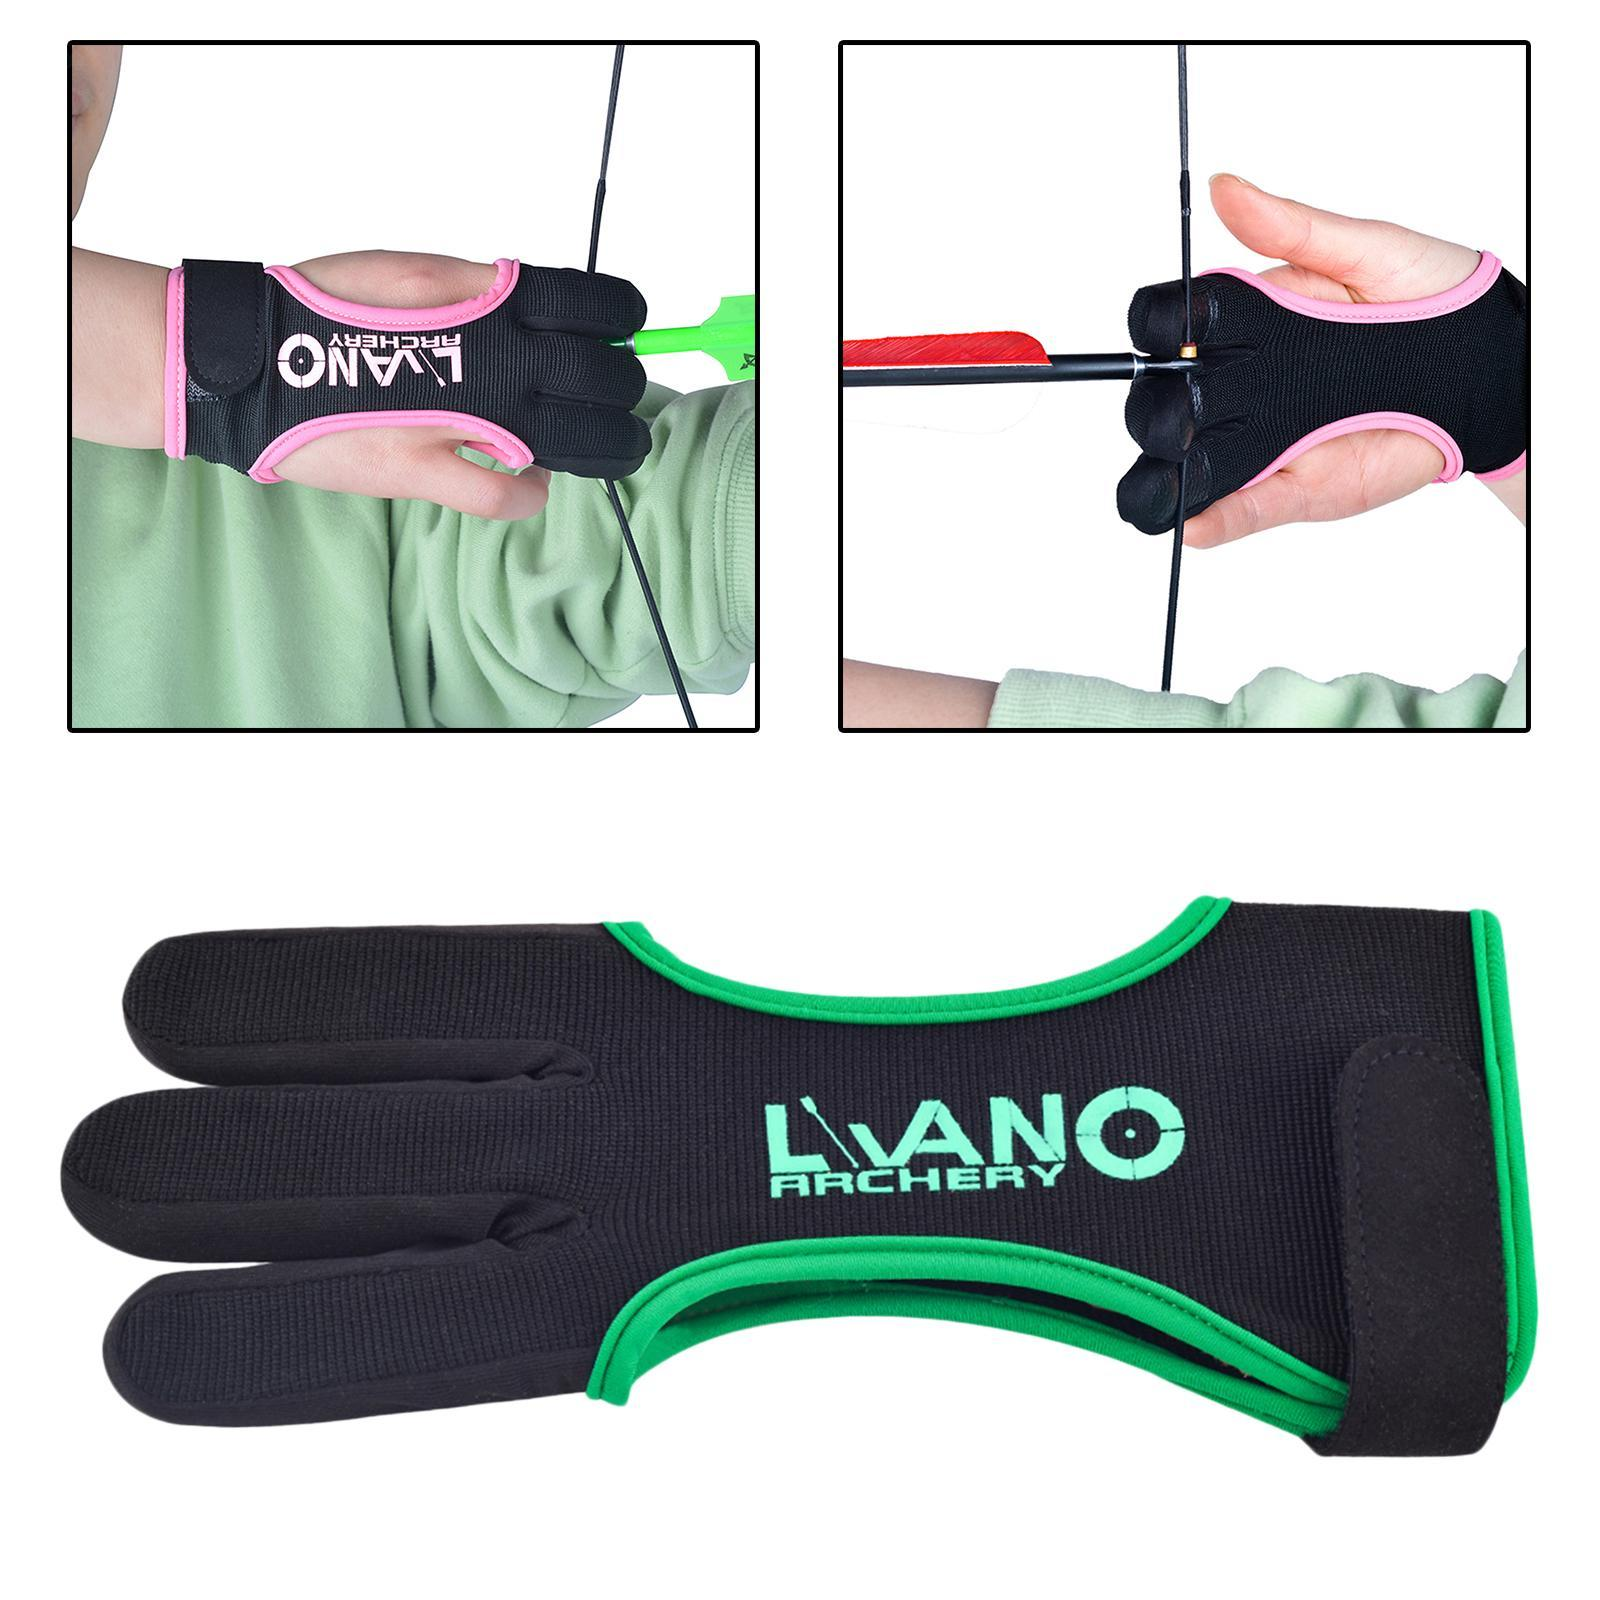 thumbnail 62 - Archery Glove for Recurve & Compound Bow 3 Finger Guard for Women Men Youth